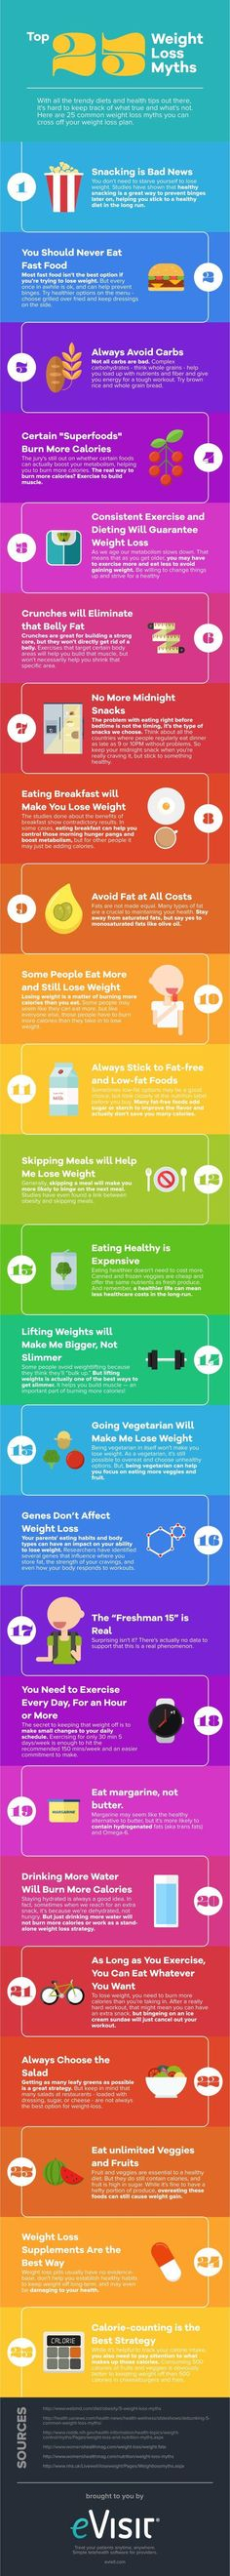 Weight loss myths are common and make it difficult to know which ones are true and which ones are false. Here Well Being Secrets have explored 25 weight loss myths that can be squashed. Weight Loss Eating Plan, Fast Weight Loss Tips, Weight Loss Program, Healthy Weight Loss, How To Lose Weight Fast, Lose Fat, Instant Weight Loss, Medical Weight Loss, Help Losing Weight